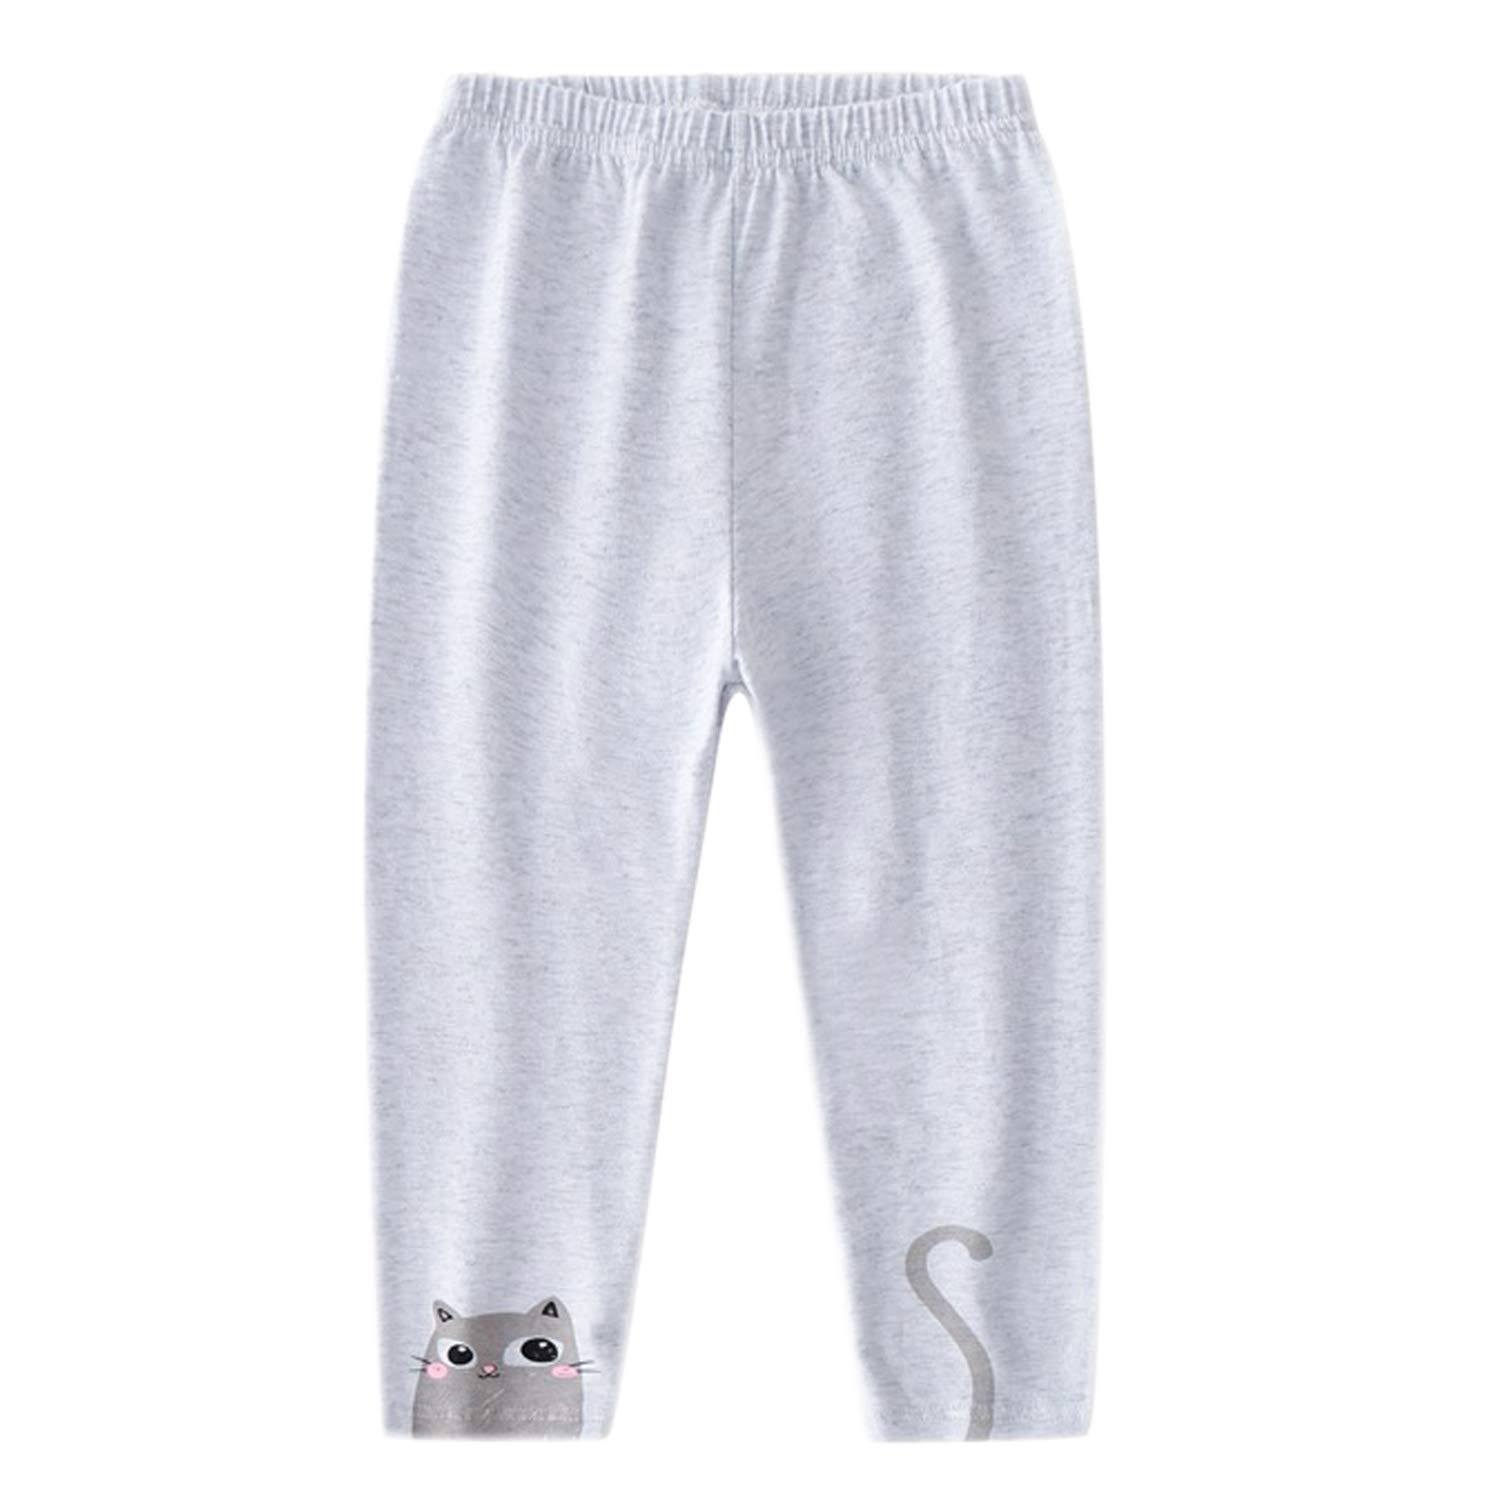 Evelin LEE 4 Packs Baby Girls Cotton Stretchy Tapered Pants Cute Skinny Pajamas Leggings by Evelin LEE (Image #2)